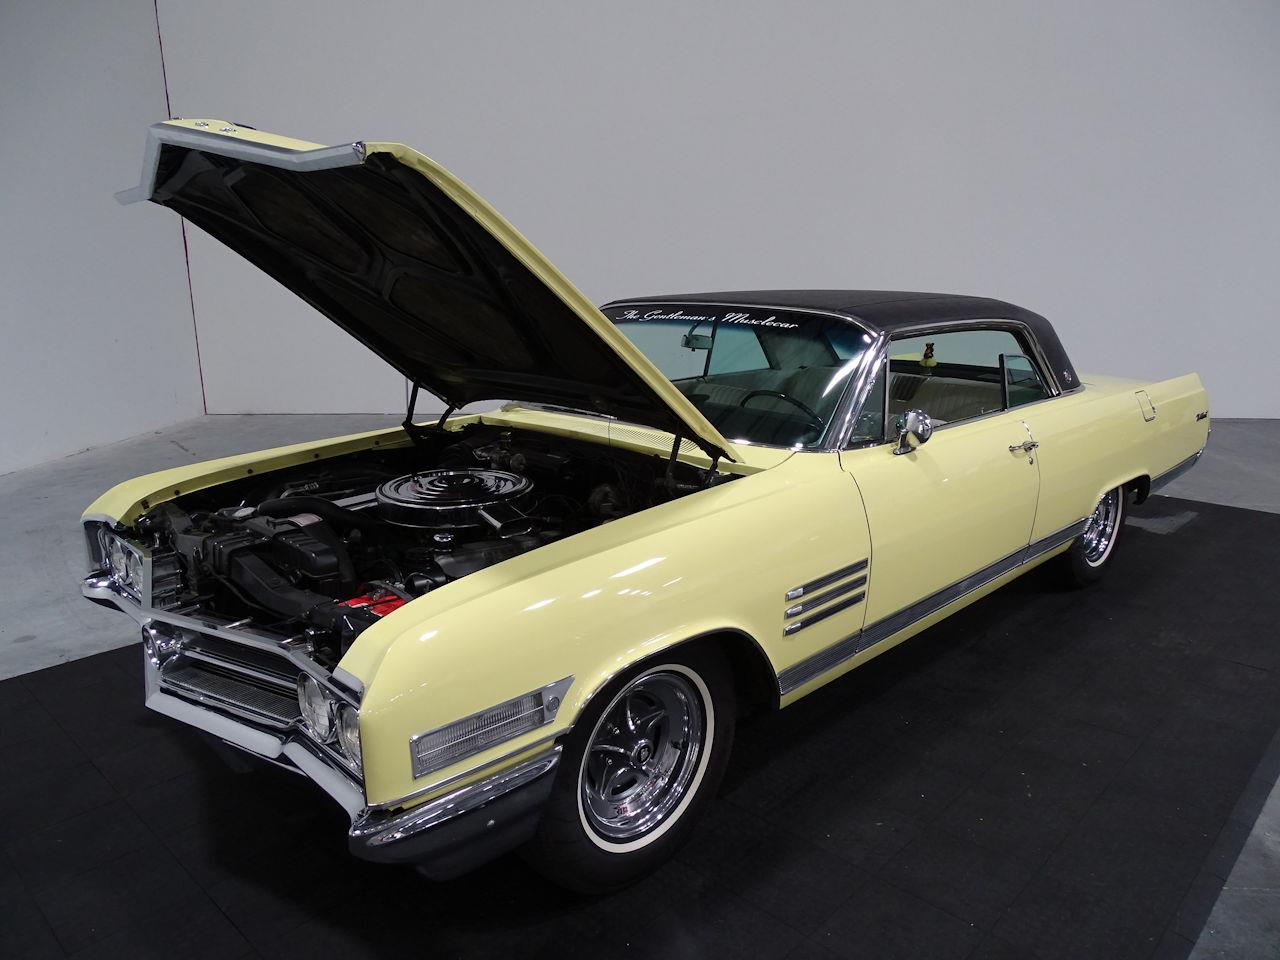 Large Picture of Classic 1964 Buick Wildcat located in Houston Texas - $35,995.00 Offered by Gateway Classic Cars - Houston - MO52